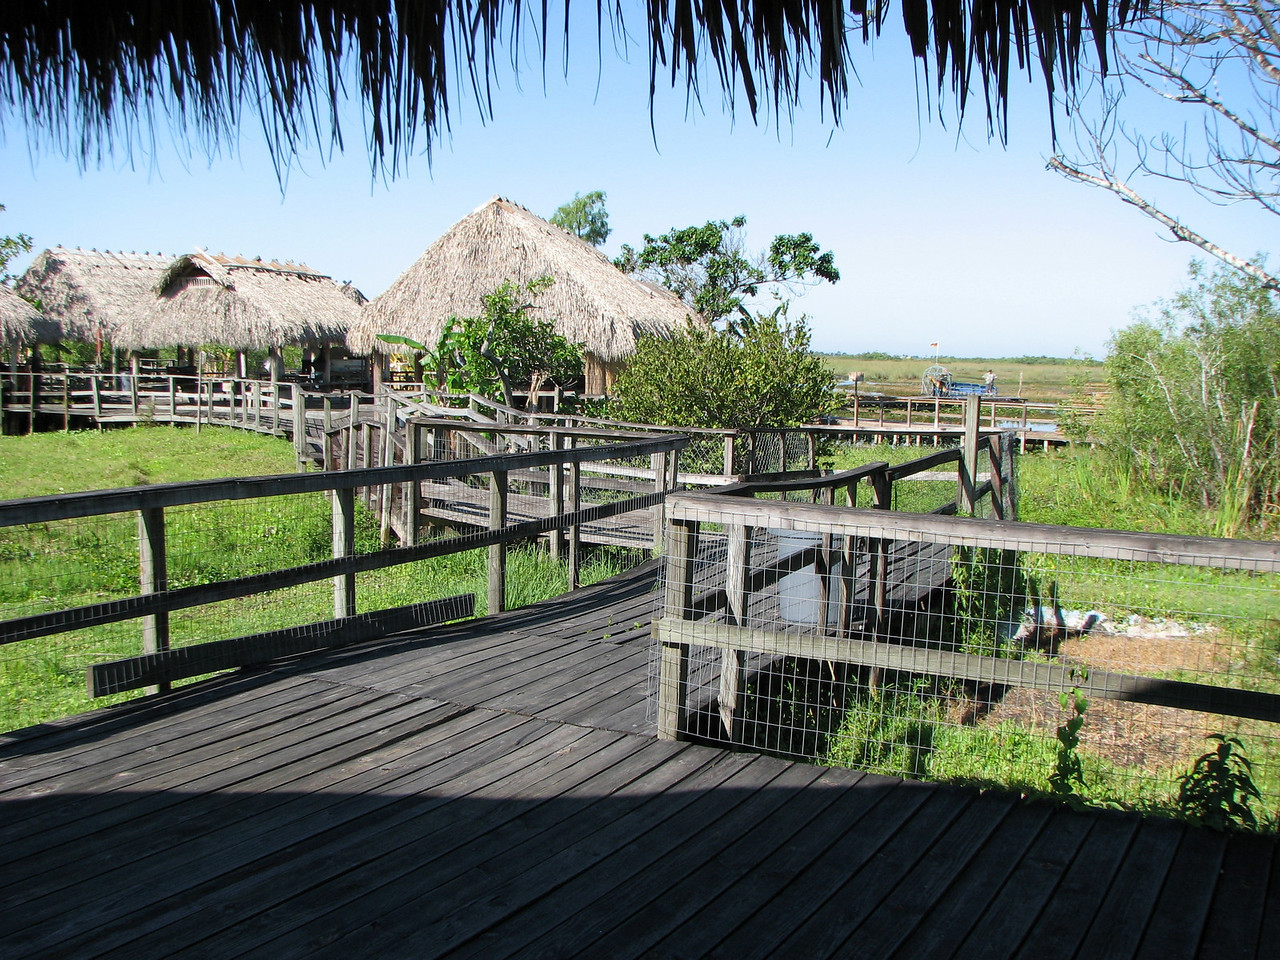 The boardwalk at the village